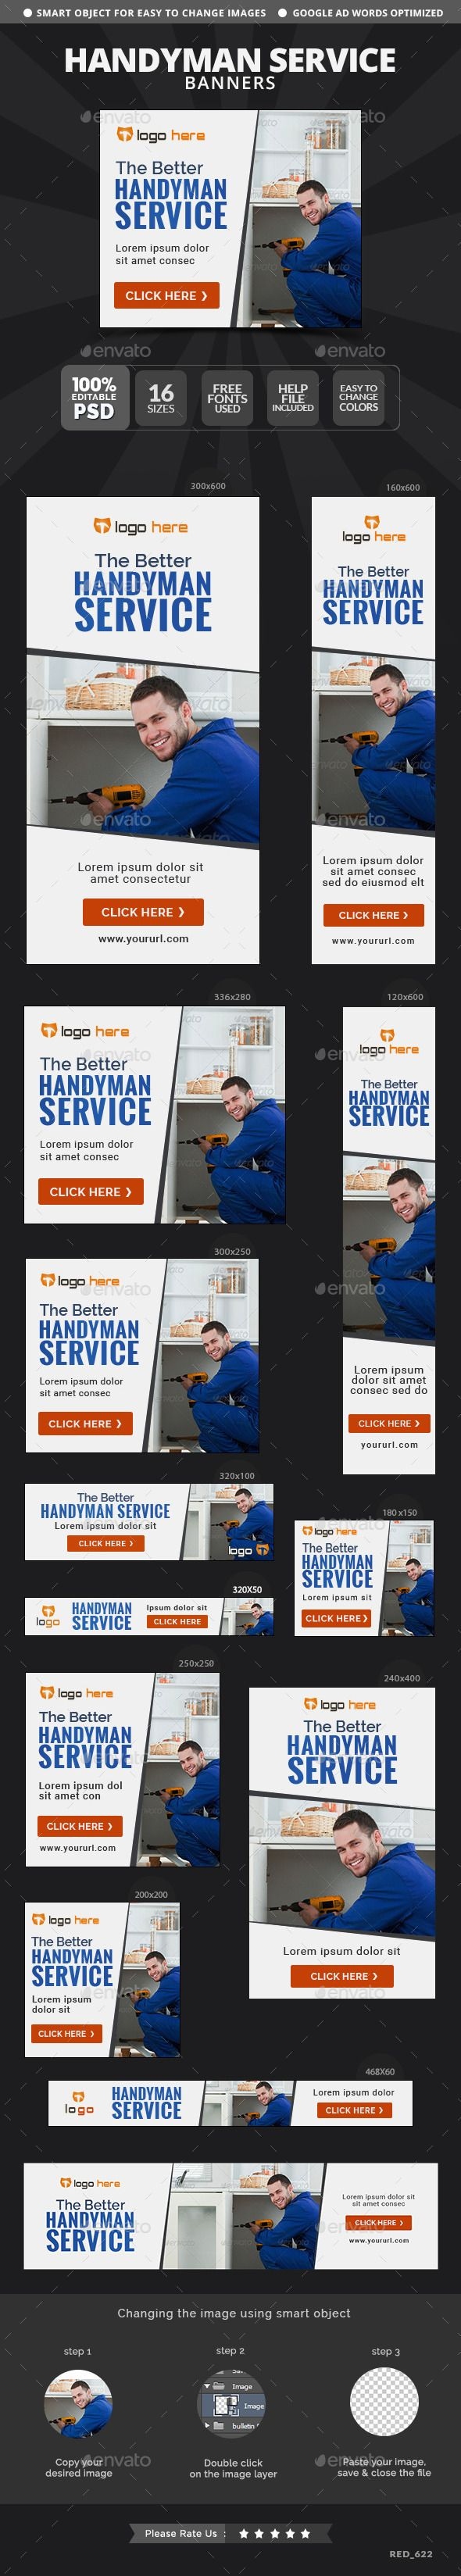 Best 25+ Handyman service ideas on Pinterest | Mud rooms, Entryway ...